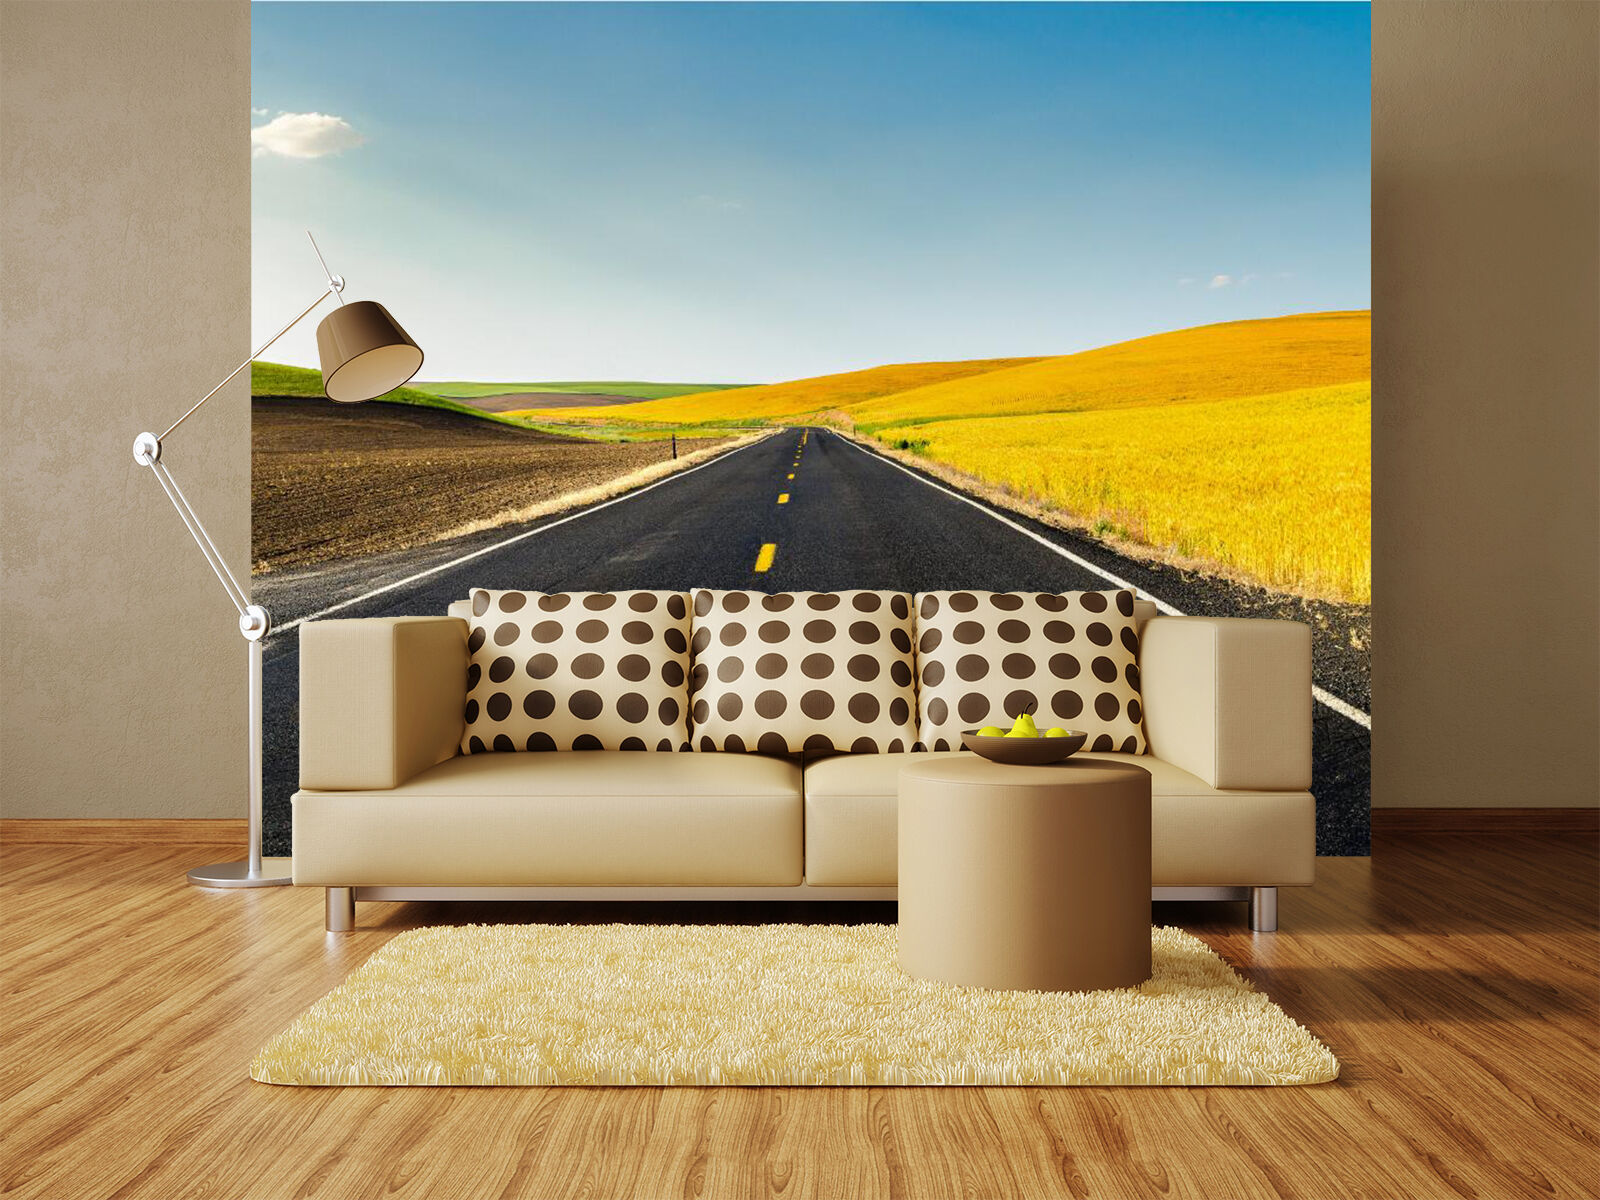 3D Road outskirt Gelb Wall Paper Wall Print Decal Decal Decal Wall Deco Indoor wall Mural d1618f